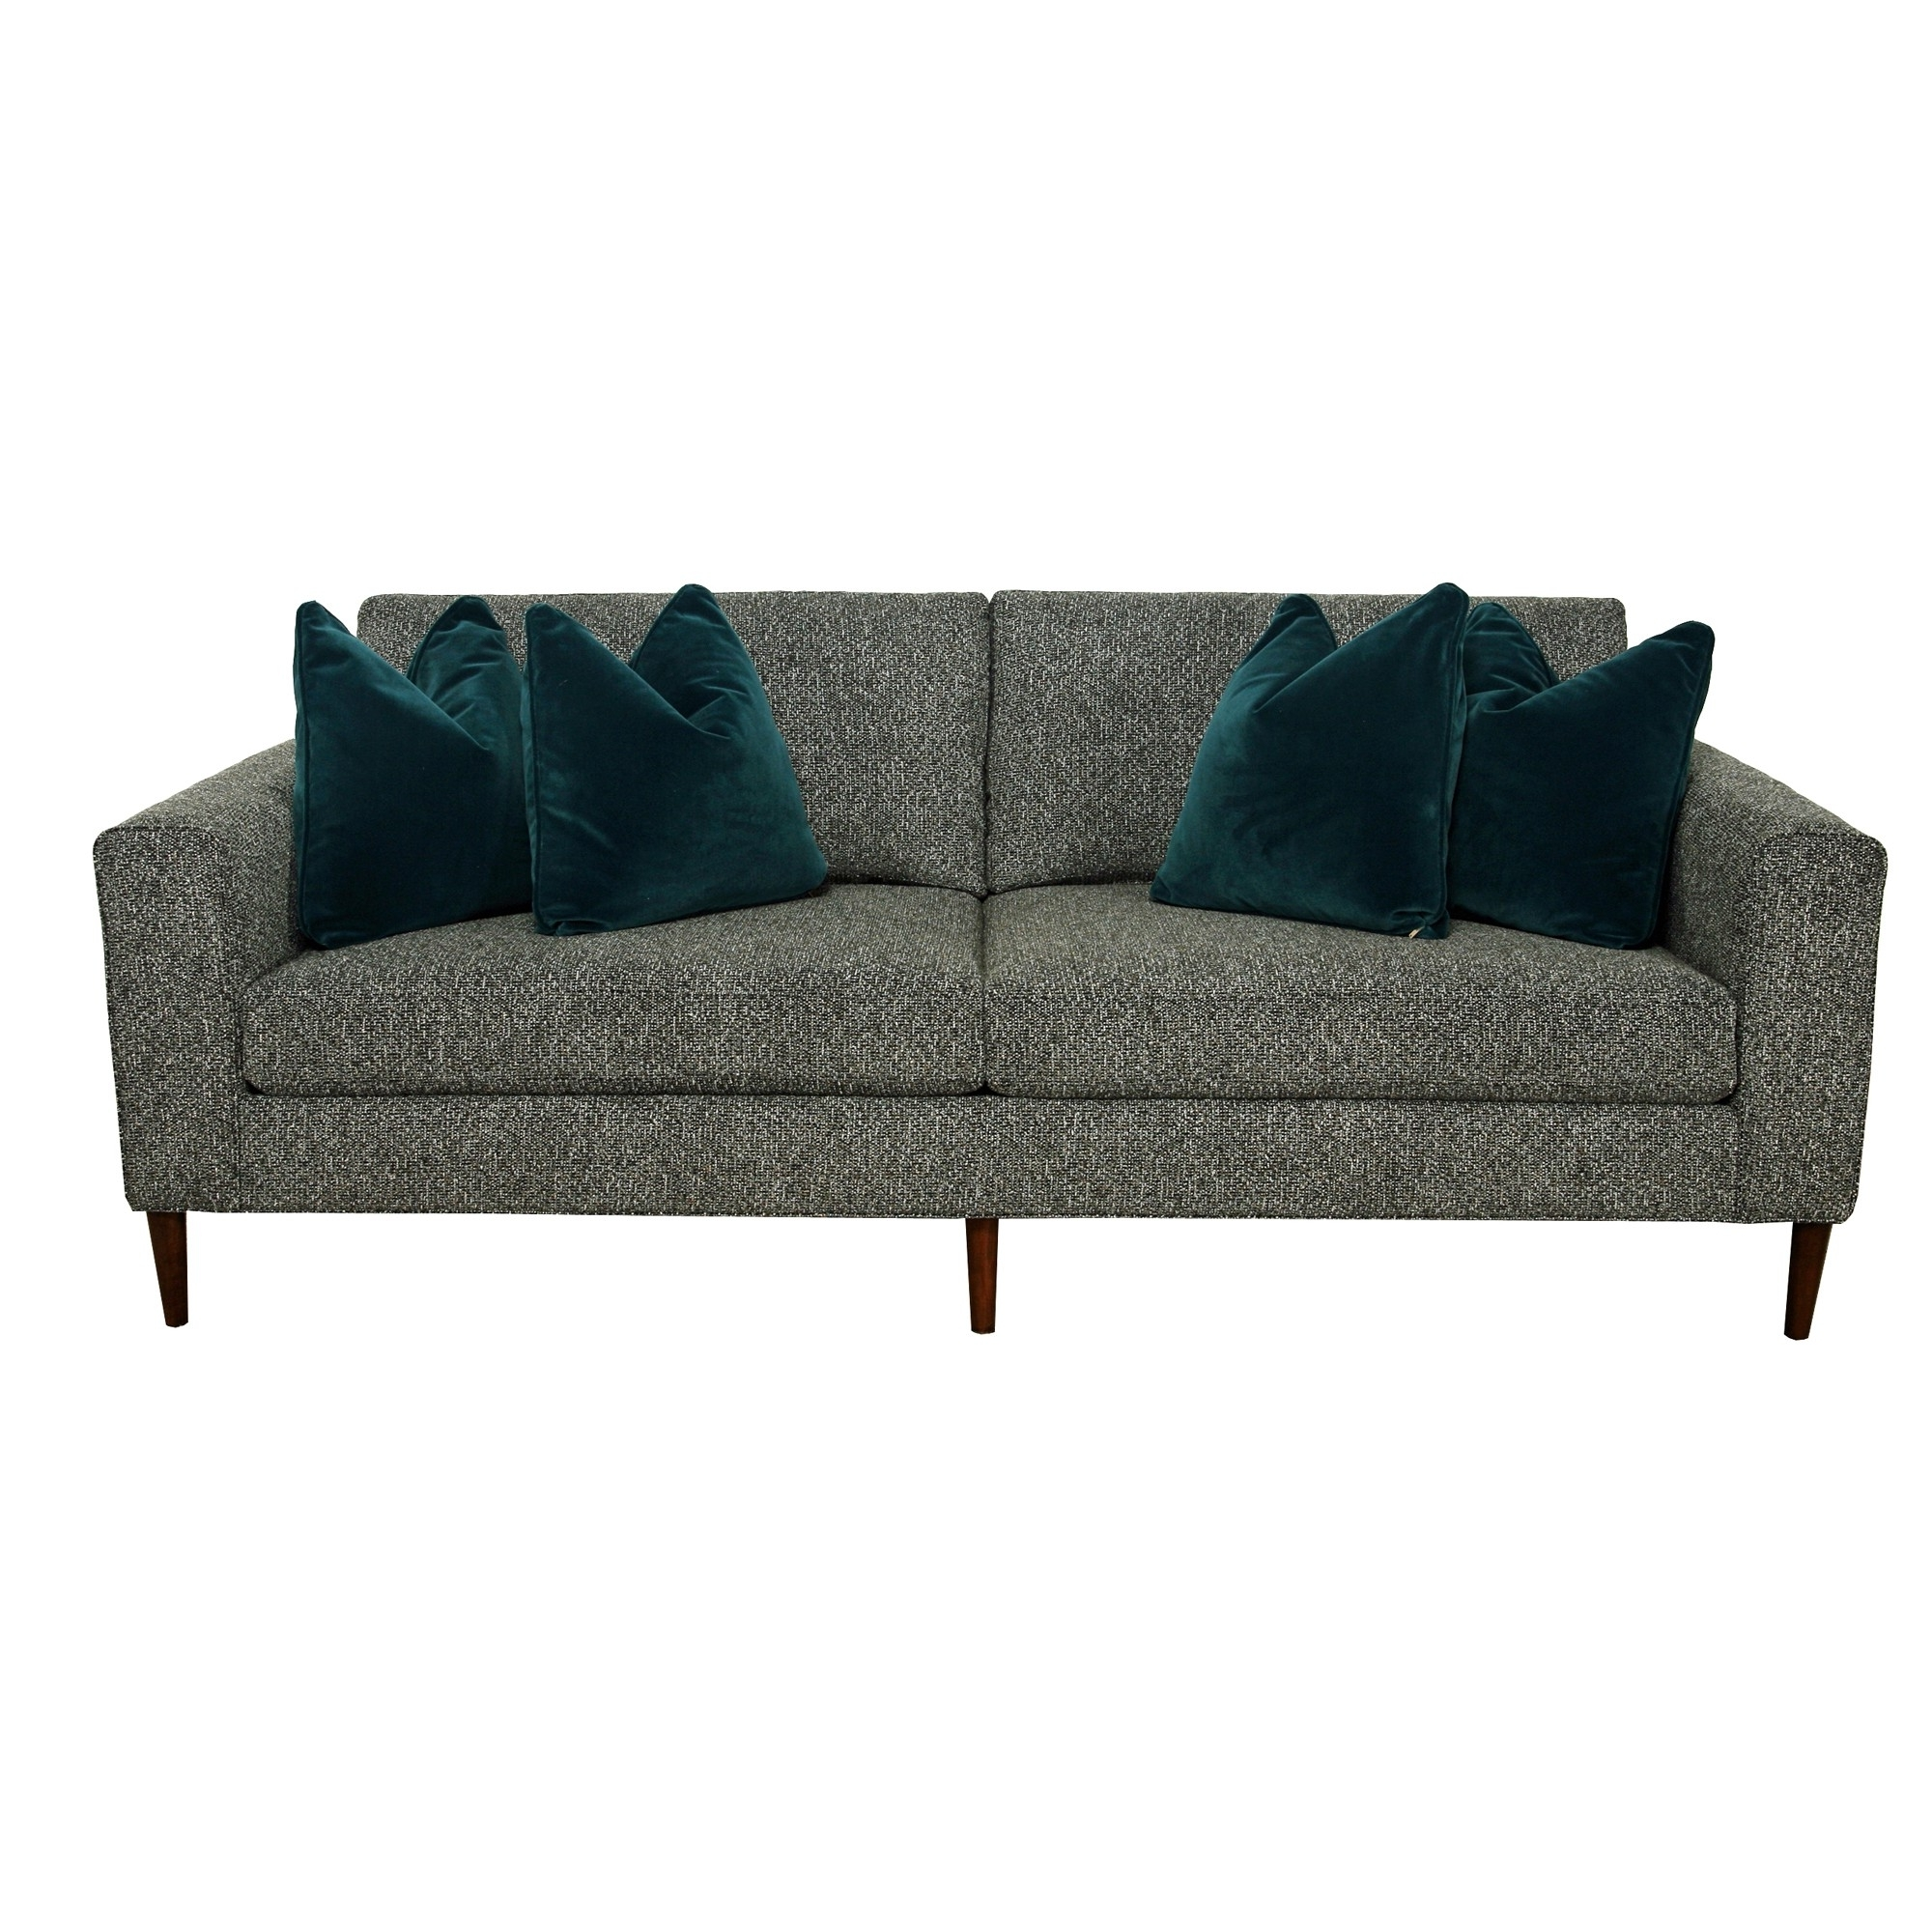 Tepperman's In Teppermans Sectional Sofas (View 5 of 20)